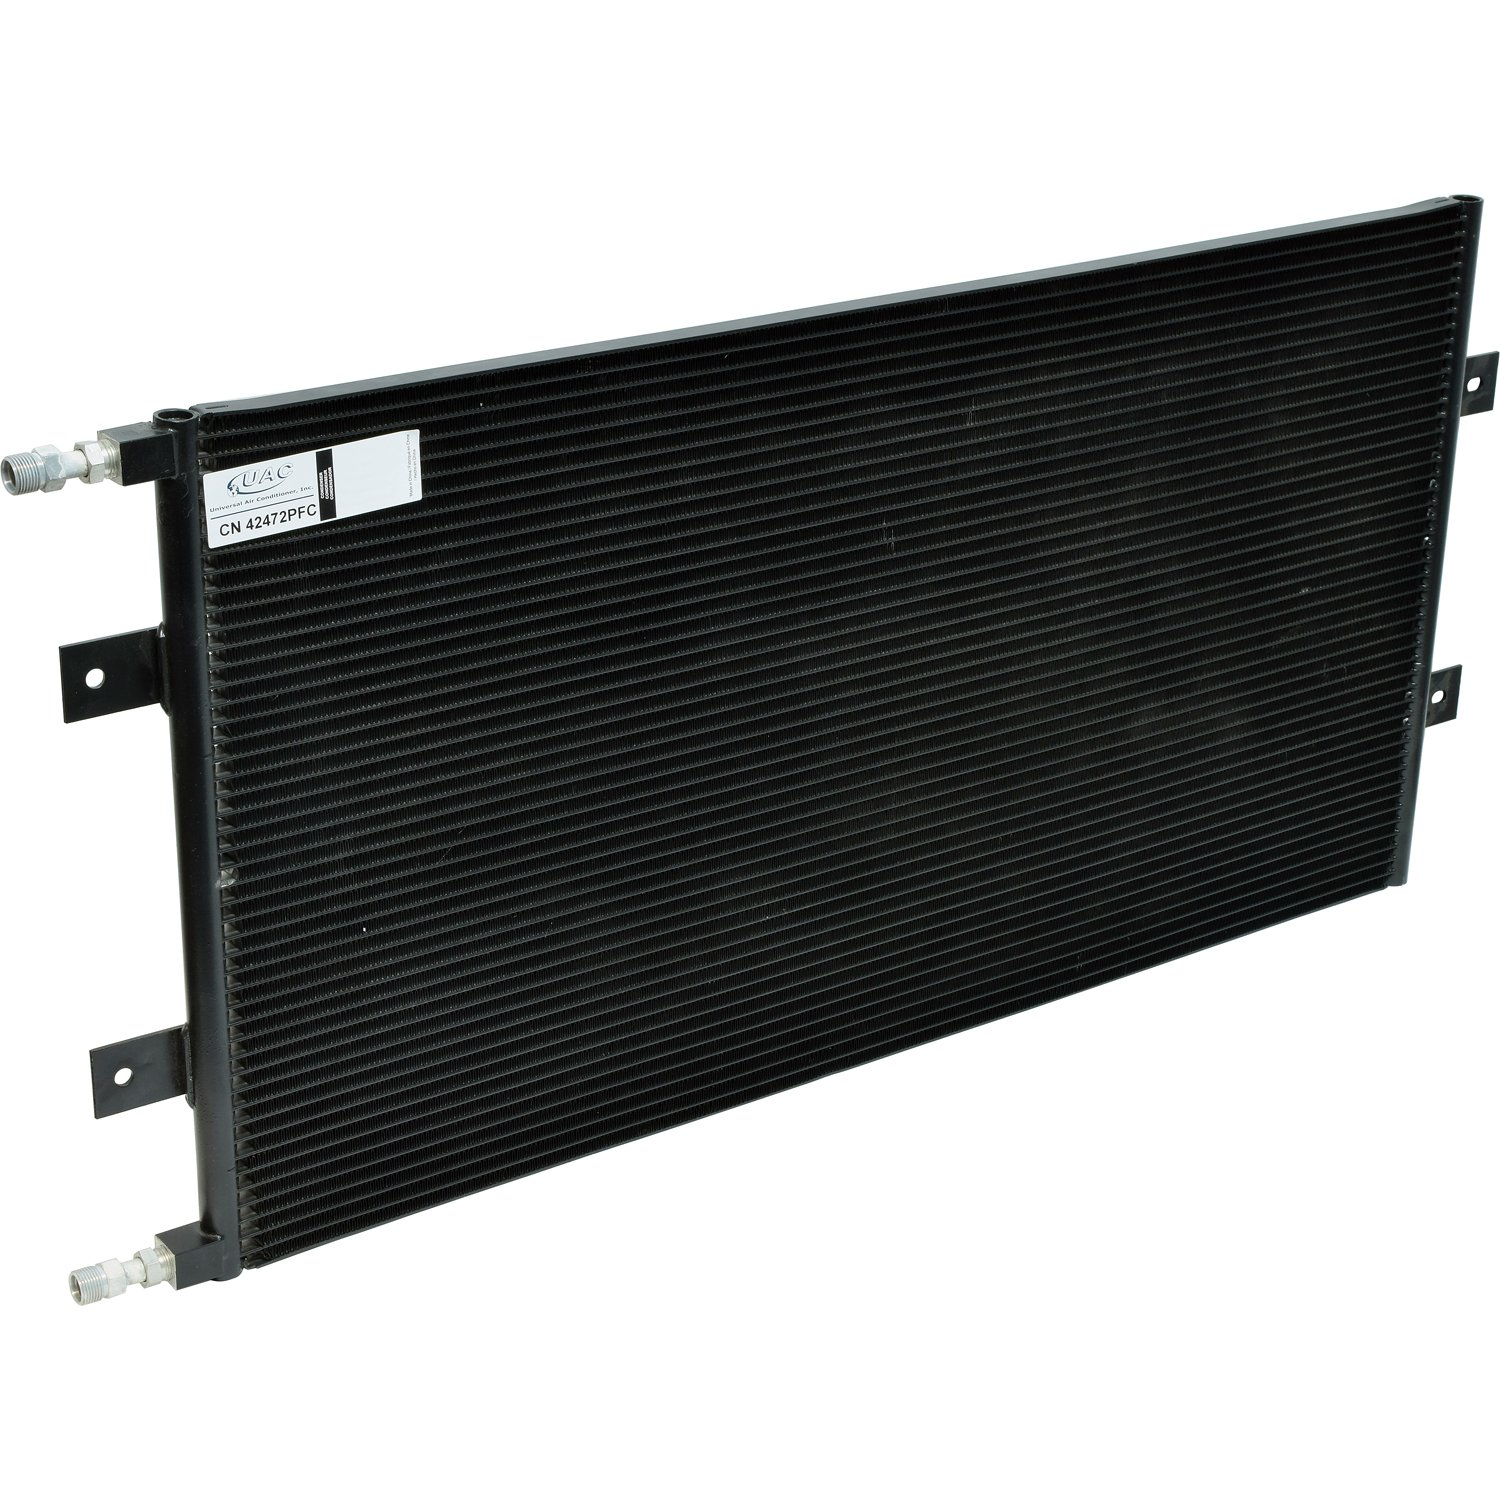 Universal Air Conditioner CN 42472PFC A/C Condenser by UAC